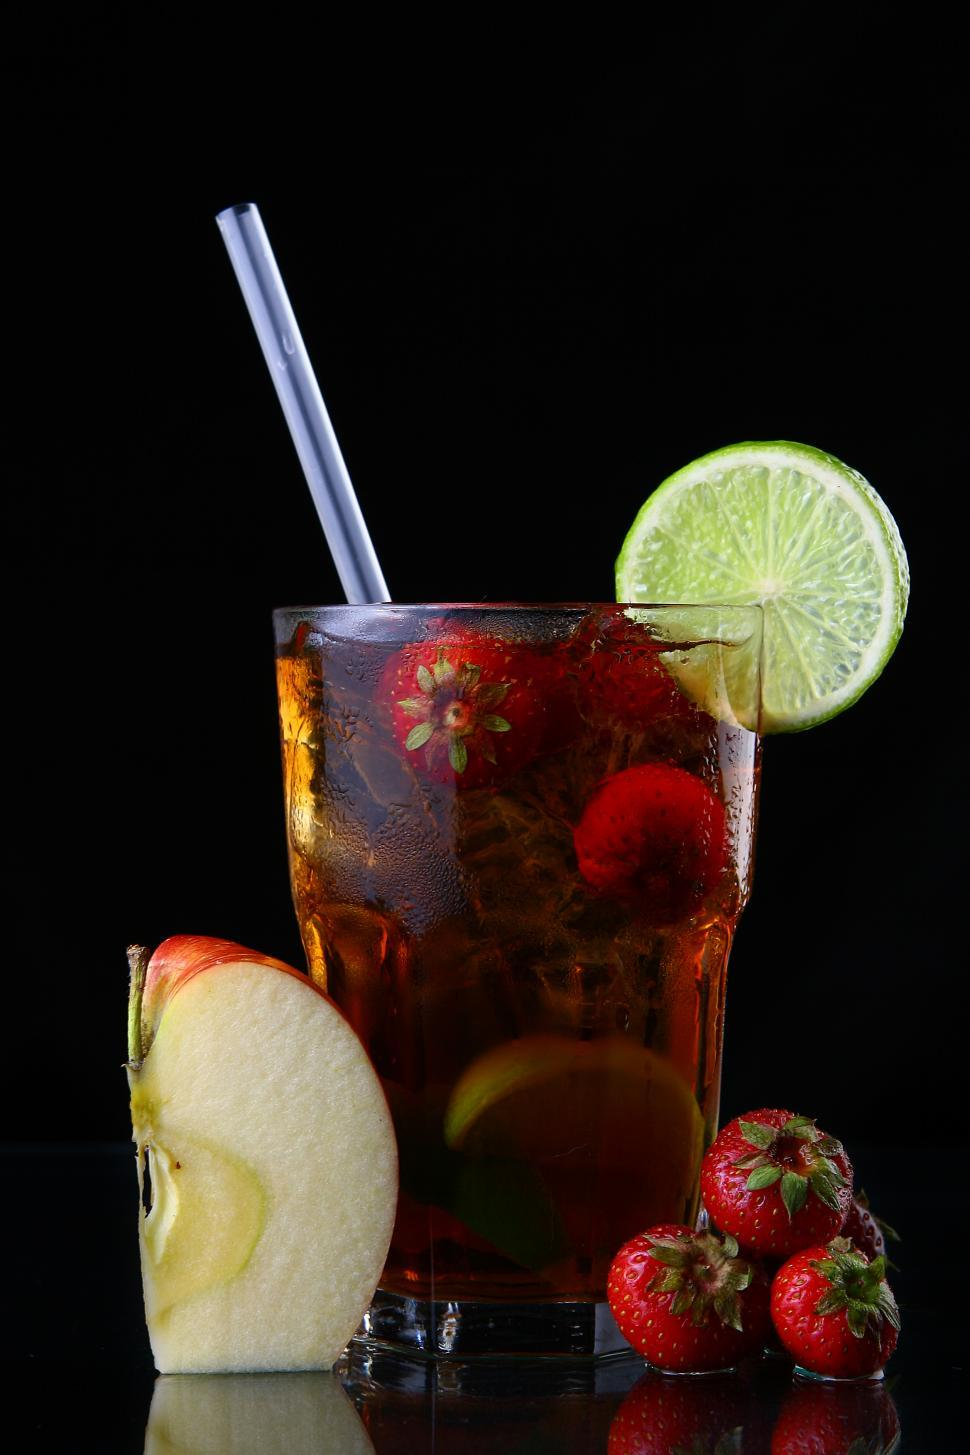 Download Free Stock HD Photo of fresh ice tea glass with lime and other fruit Online